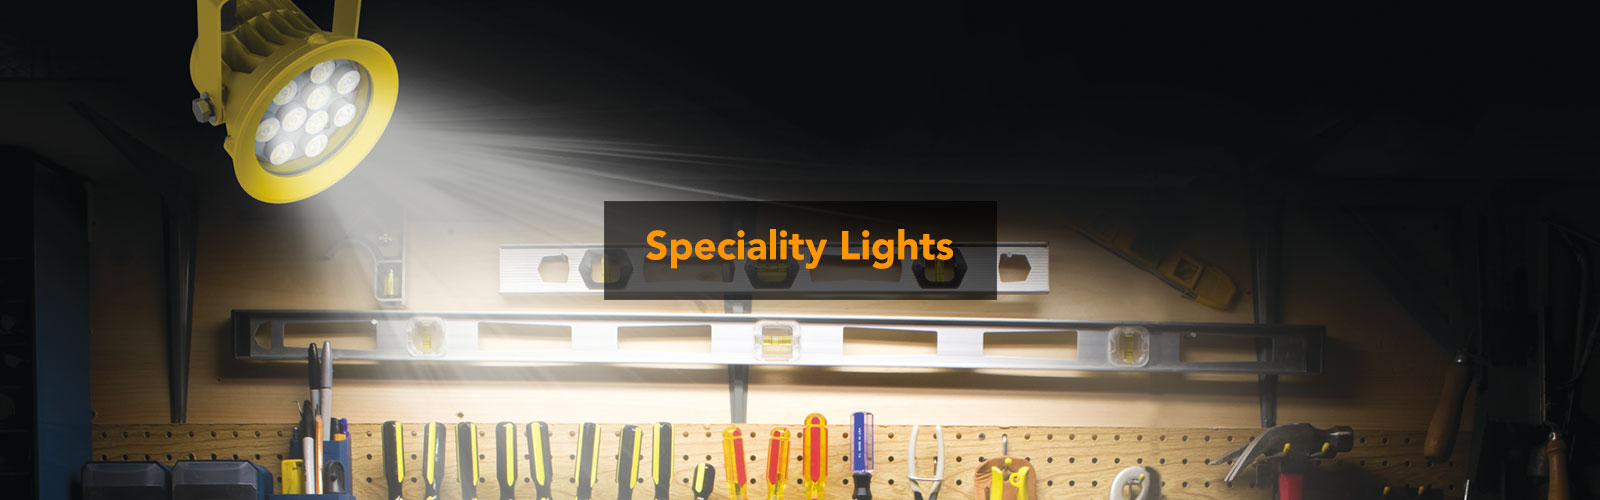 Specialty Lights